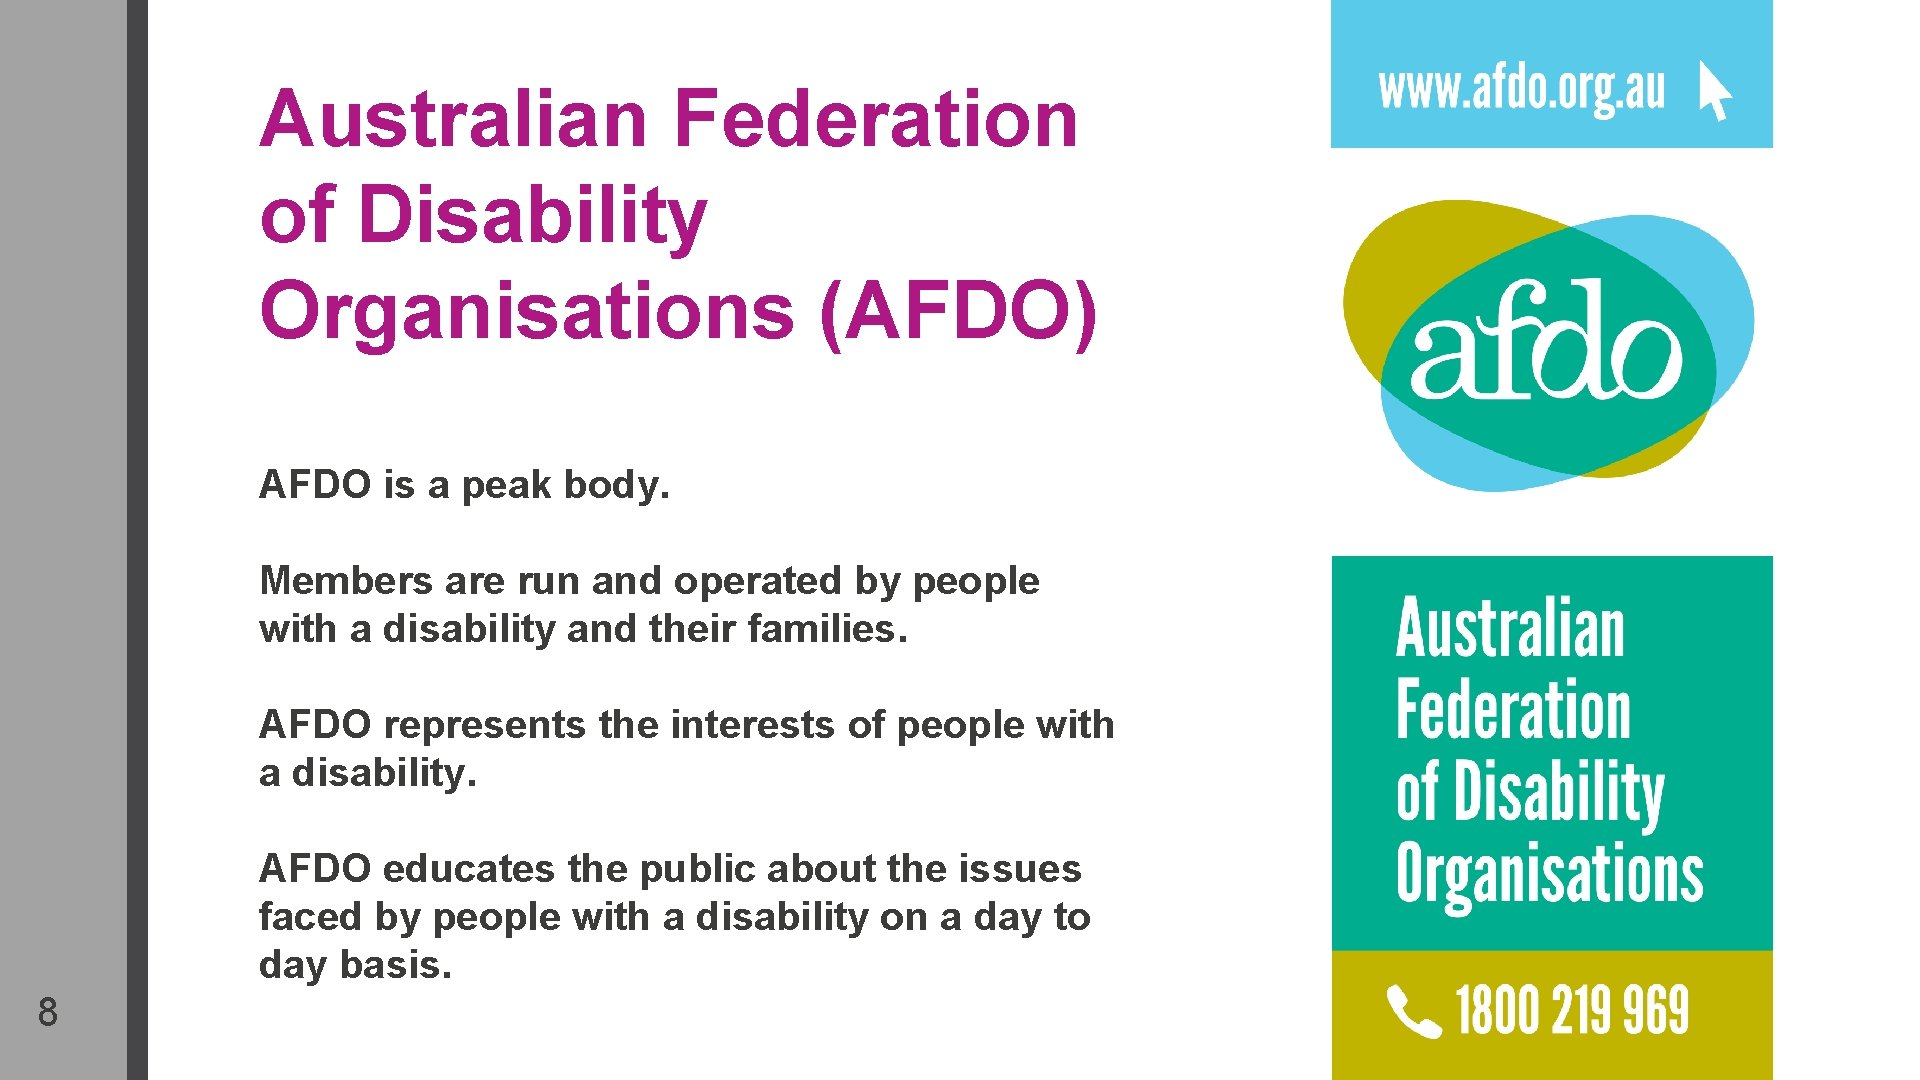 Australian Federation of Disability Organisations (AFDO) AFDO is a peak body. Members are run